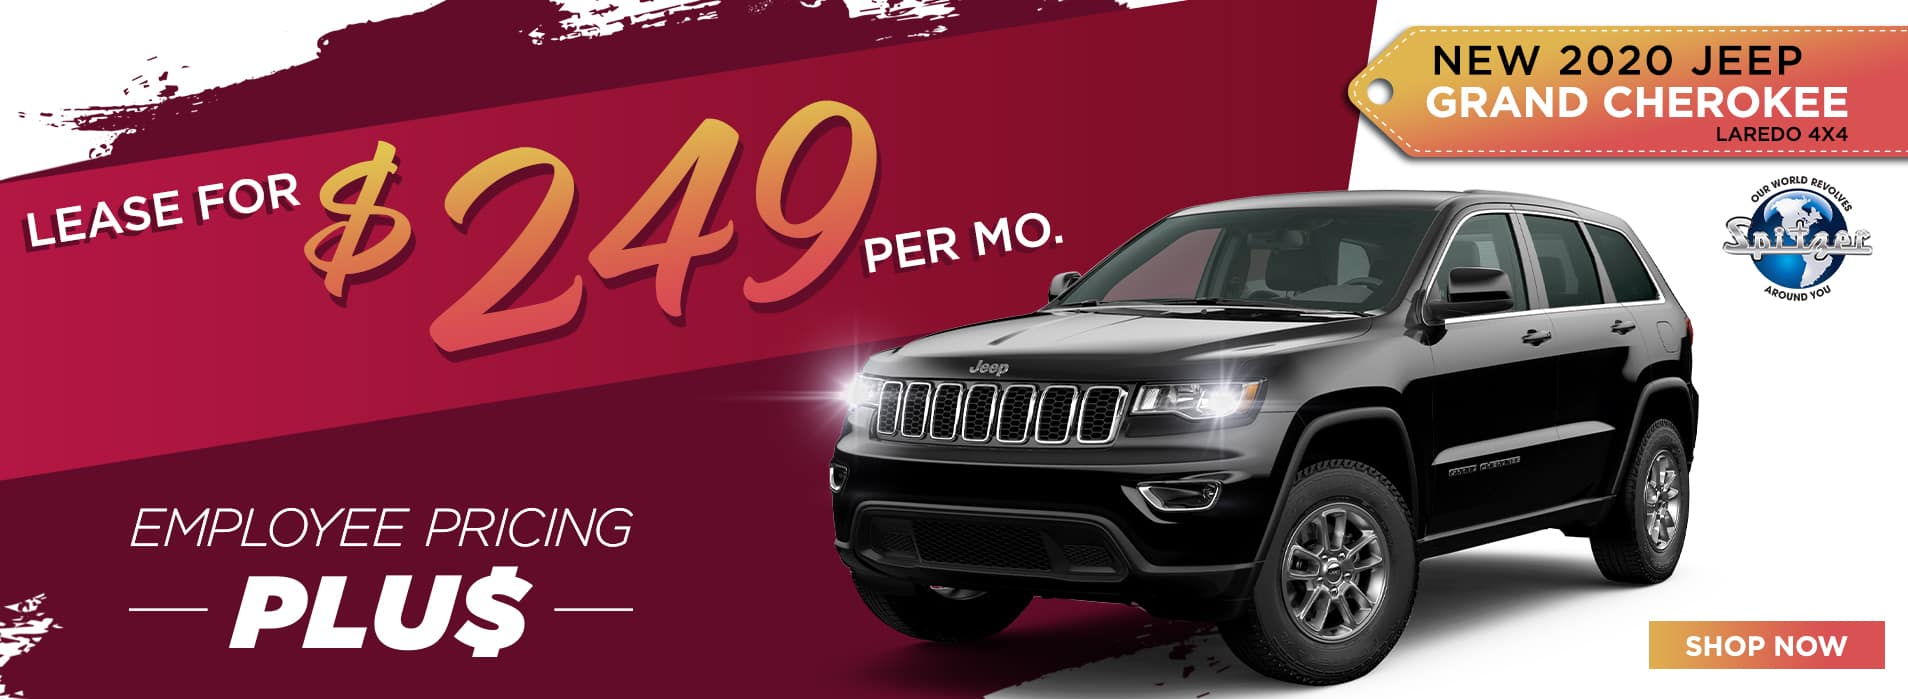 Grand Cherokee | Lease for $249 per month